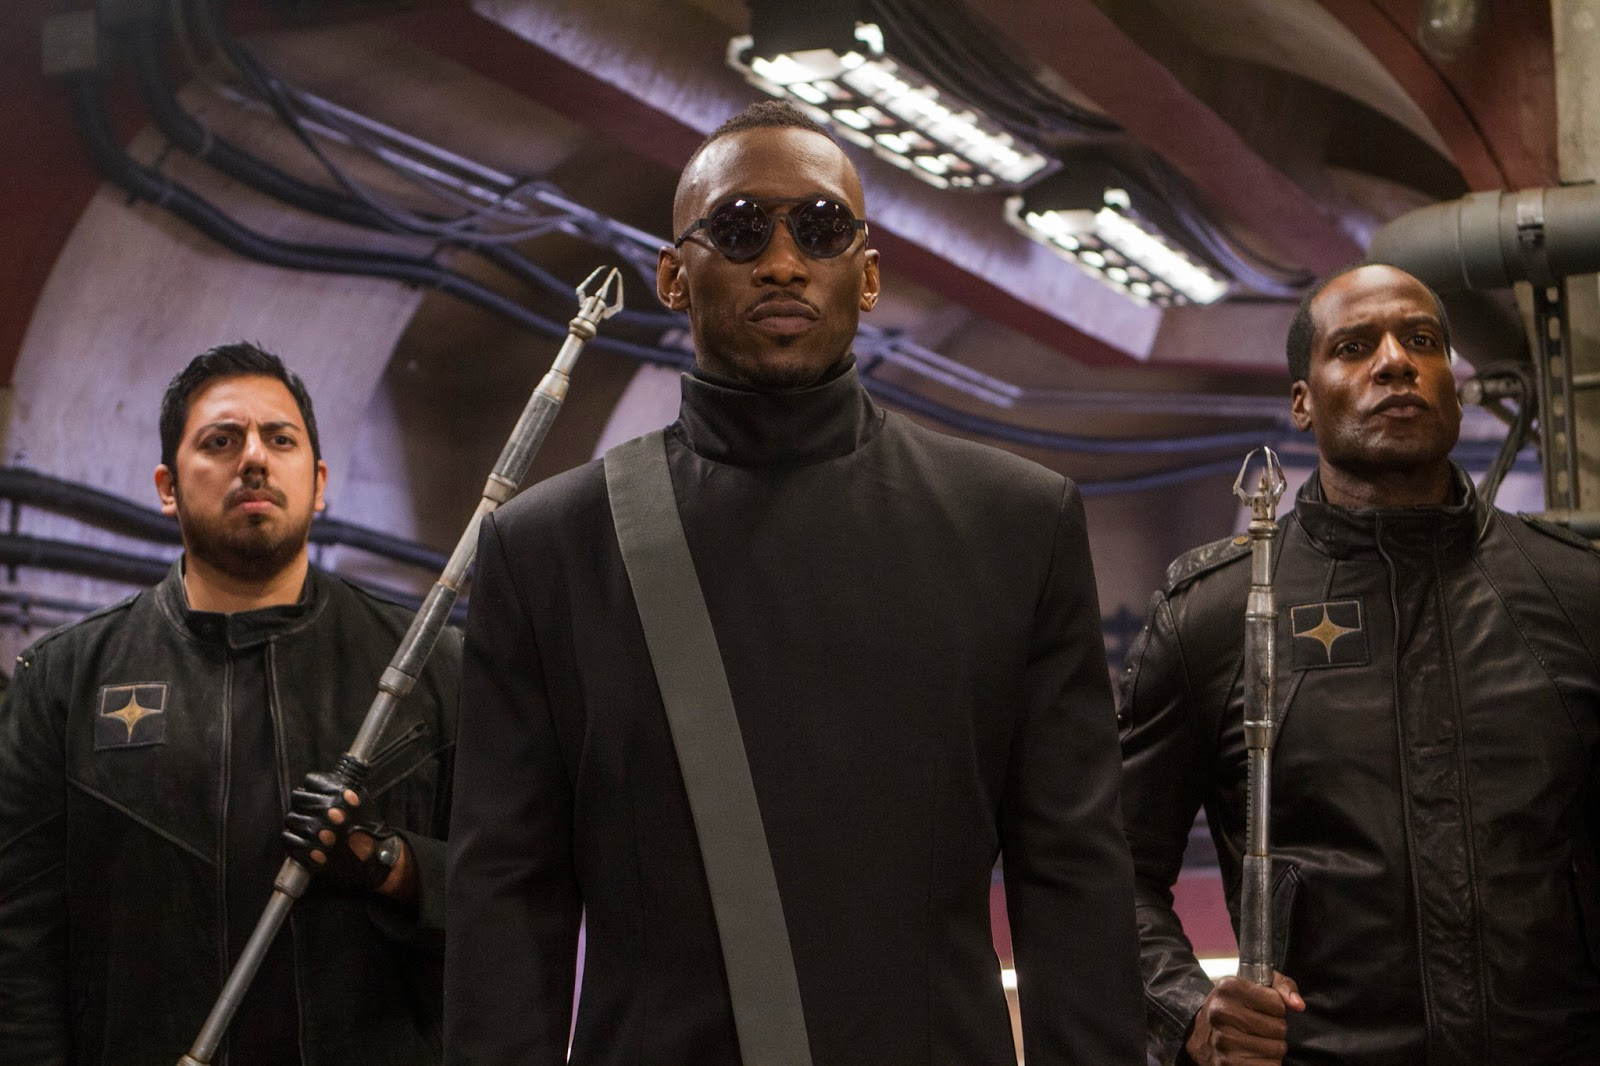 Mahershala Ali will bring Blade to the Marvel Cinematic Universe in the hero's Phase 5 solo film.